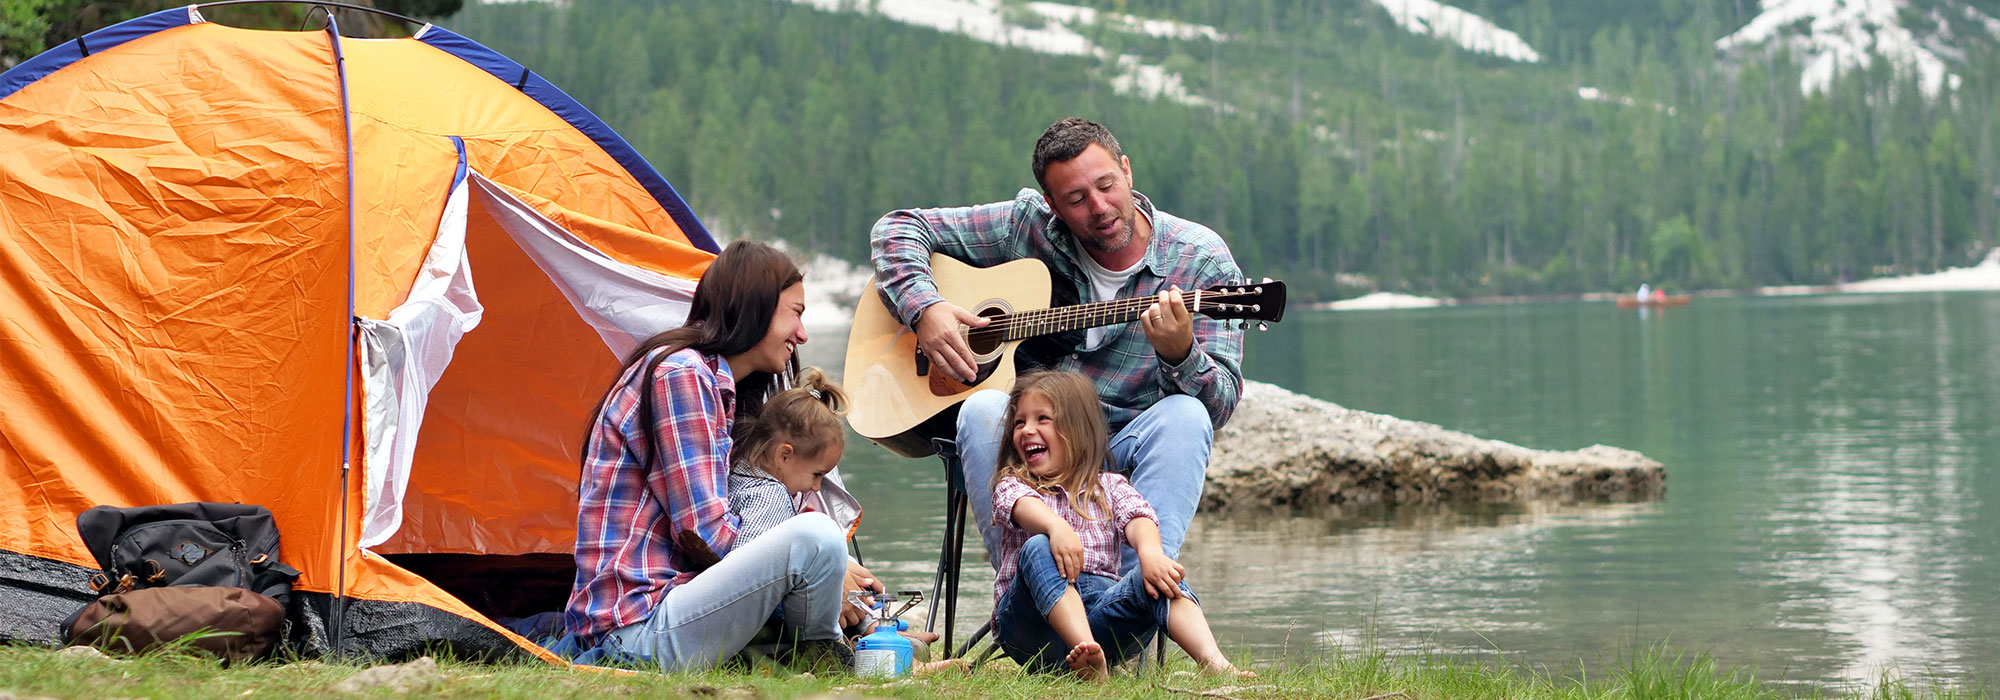 family camping and playing guitar